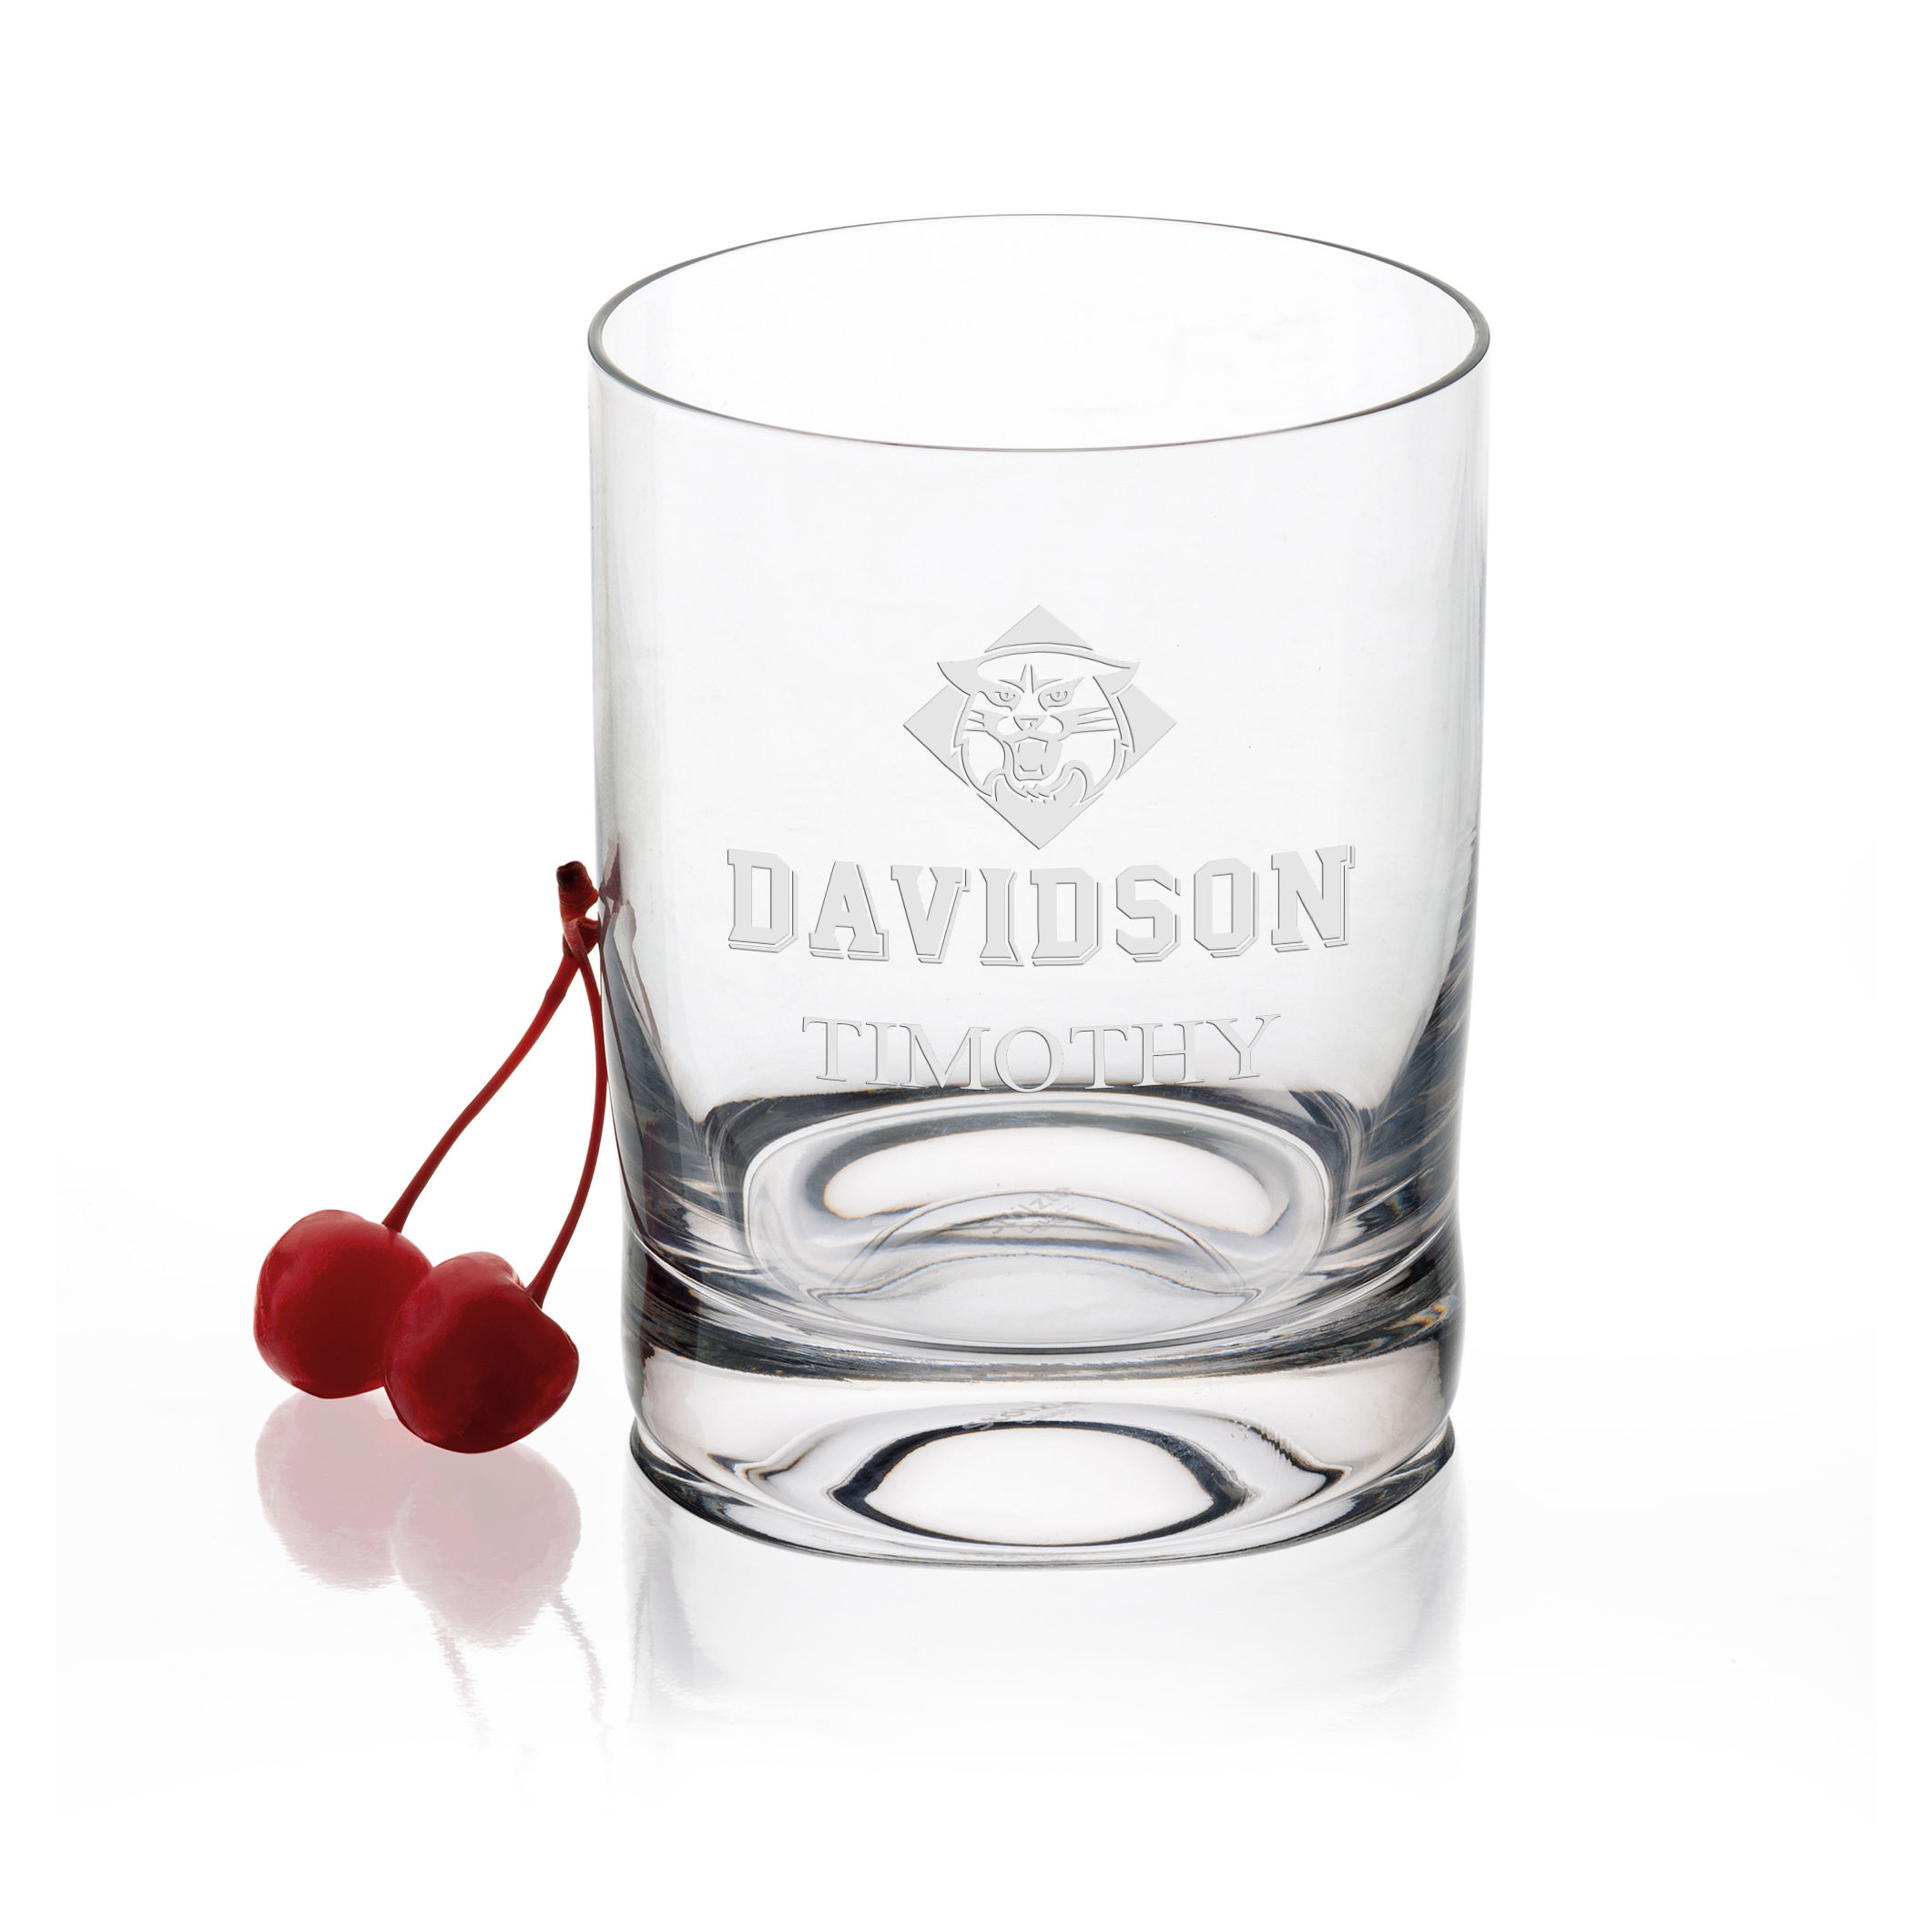 Davidson College Tumbler Glasses - Set of 4